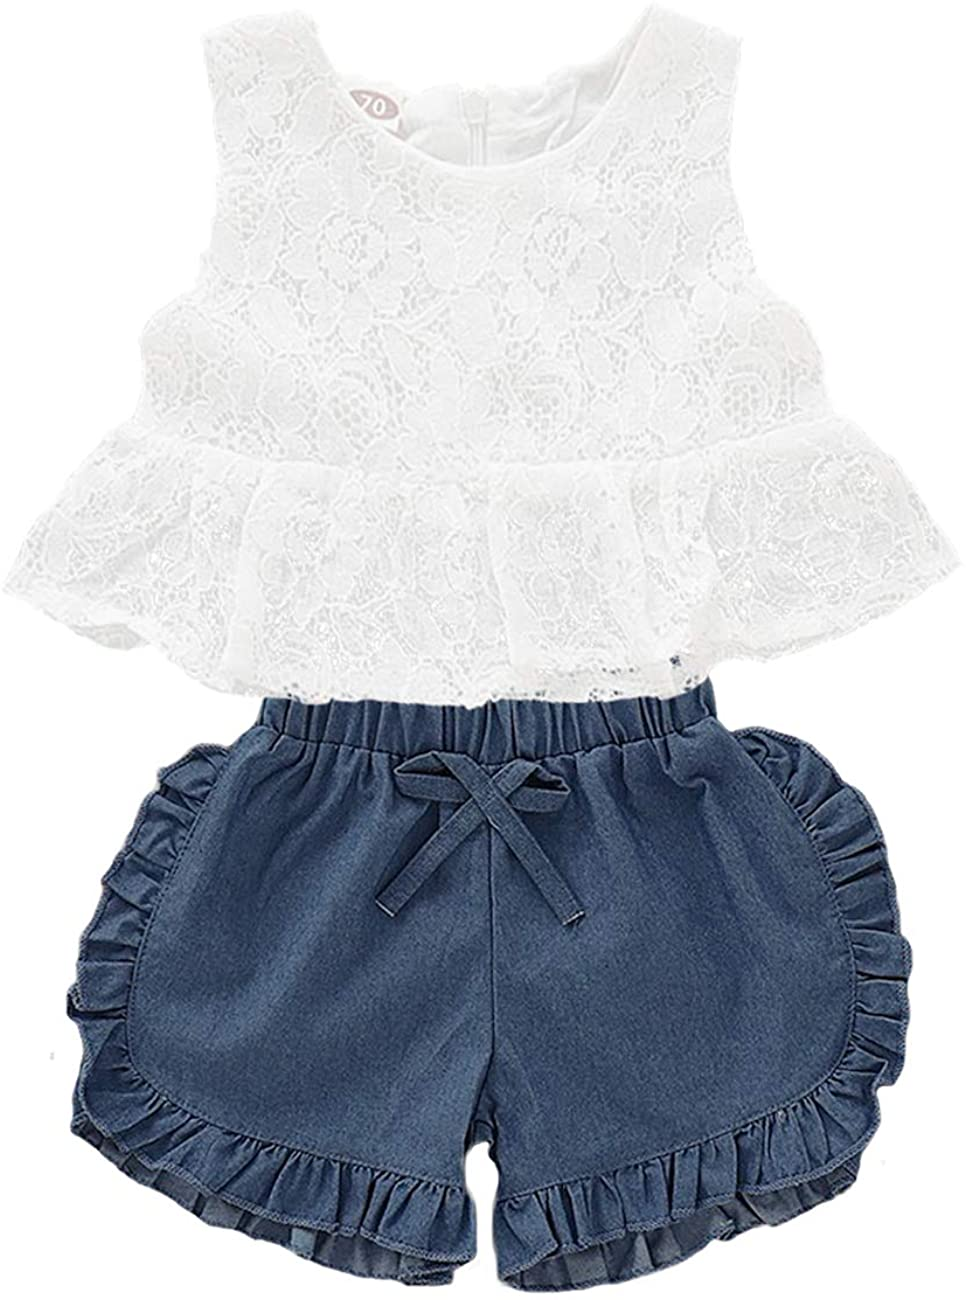 Baby Girl Clothes Lace Sleeveless Vest Tops and Jeans Shorts Outfits Set